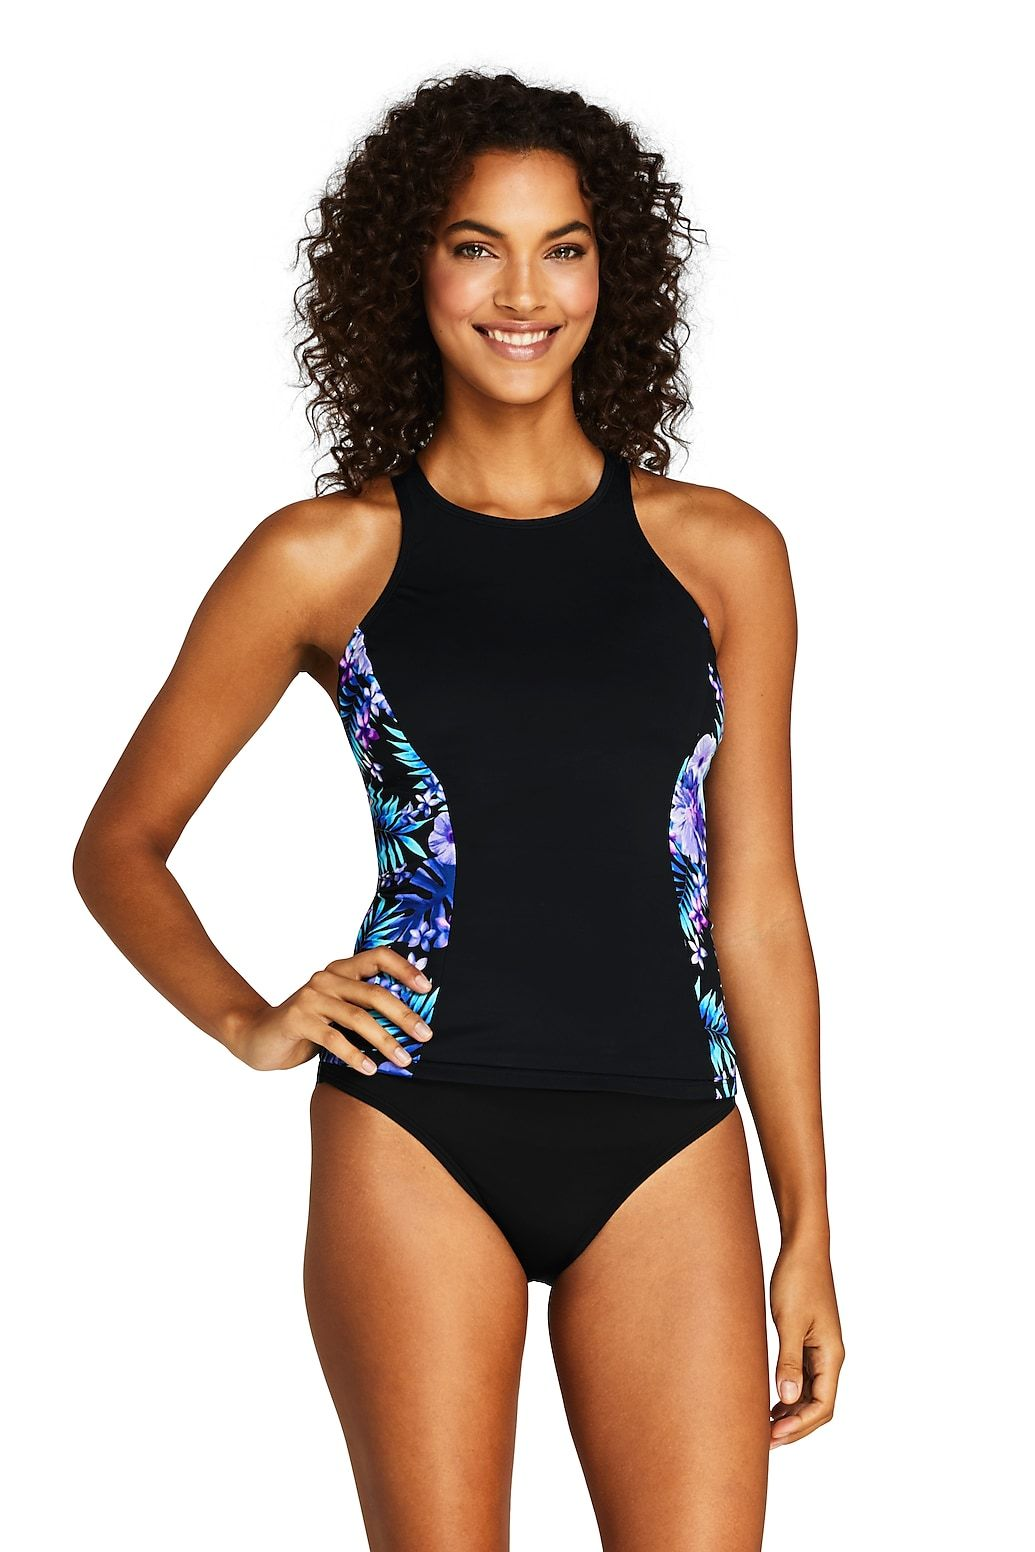 de96182c49026 Women's Chlorine Resistant High-neck Tankini Top Swimsuit Print from Lands'  End